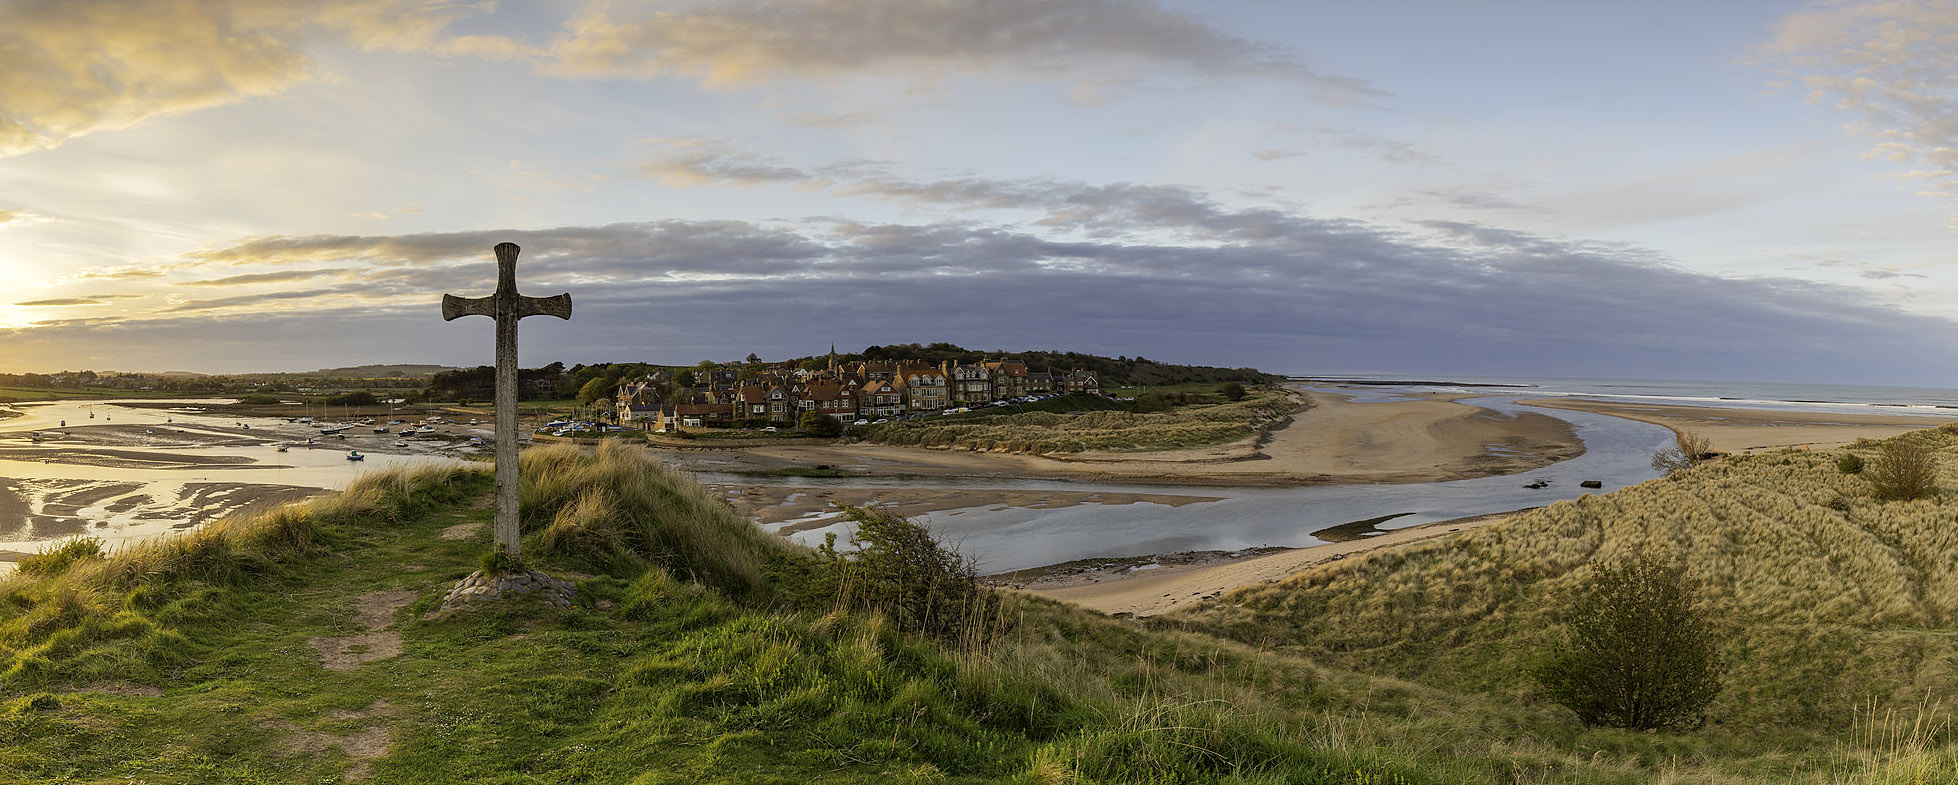 Alnmouth, Northumberland by Michael Gray.jpg